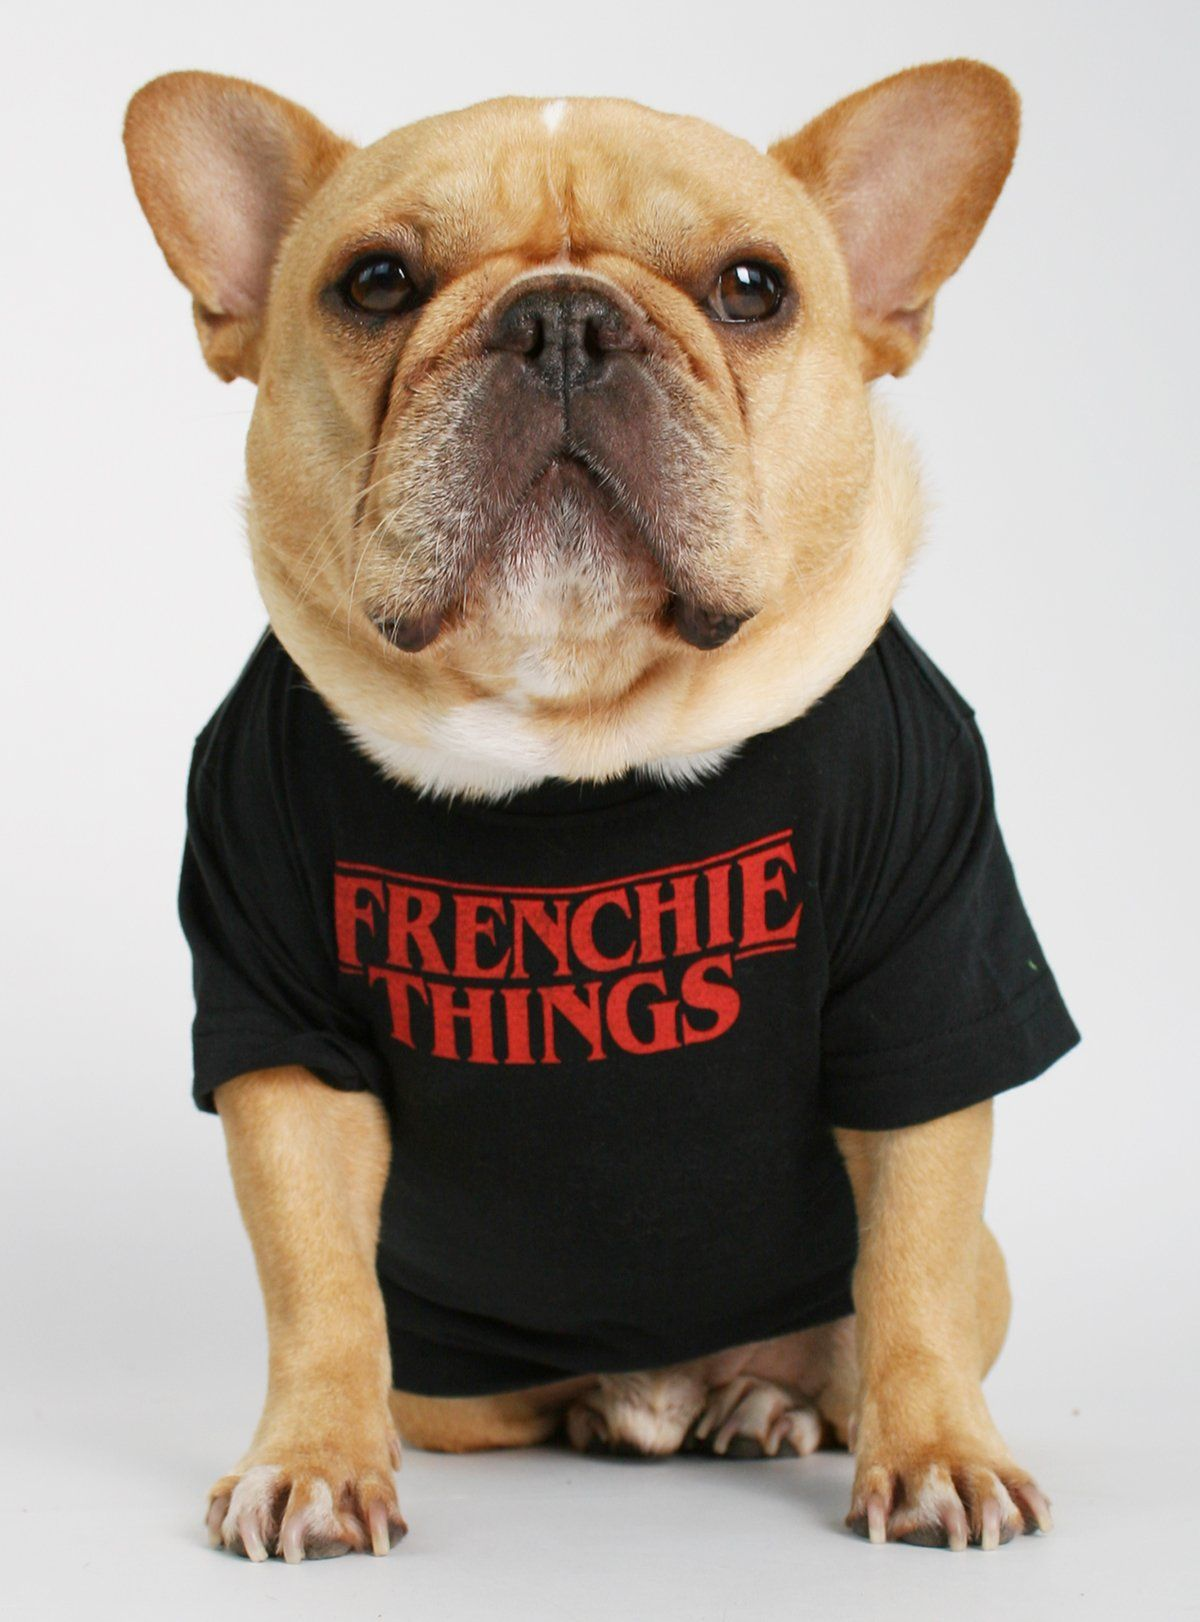 Frenchie Things Dog Tee Dog Shirt Dogs Tee Bulldog